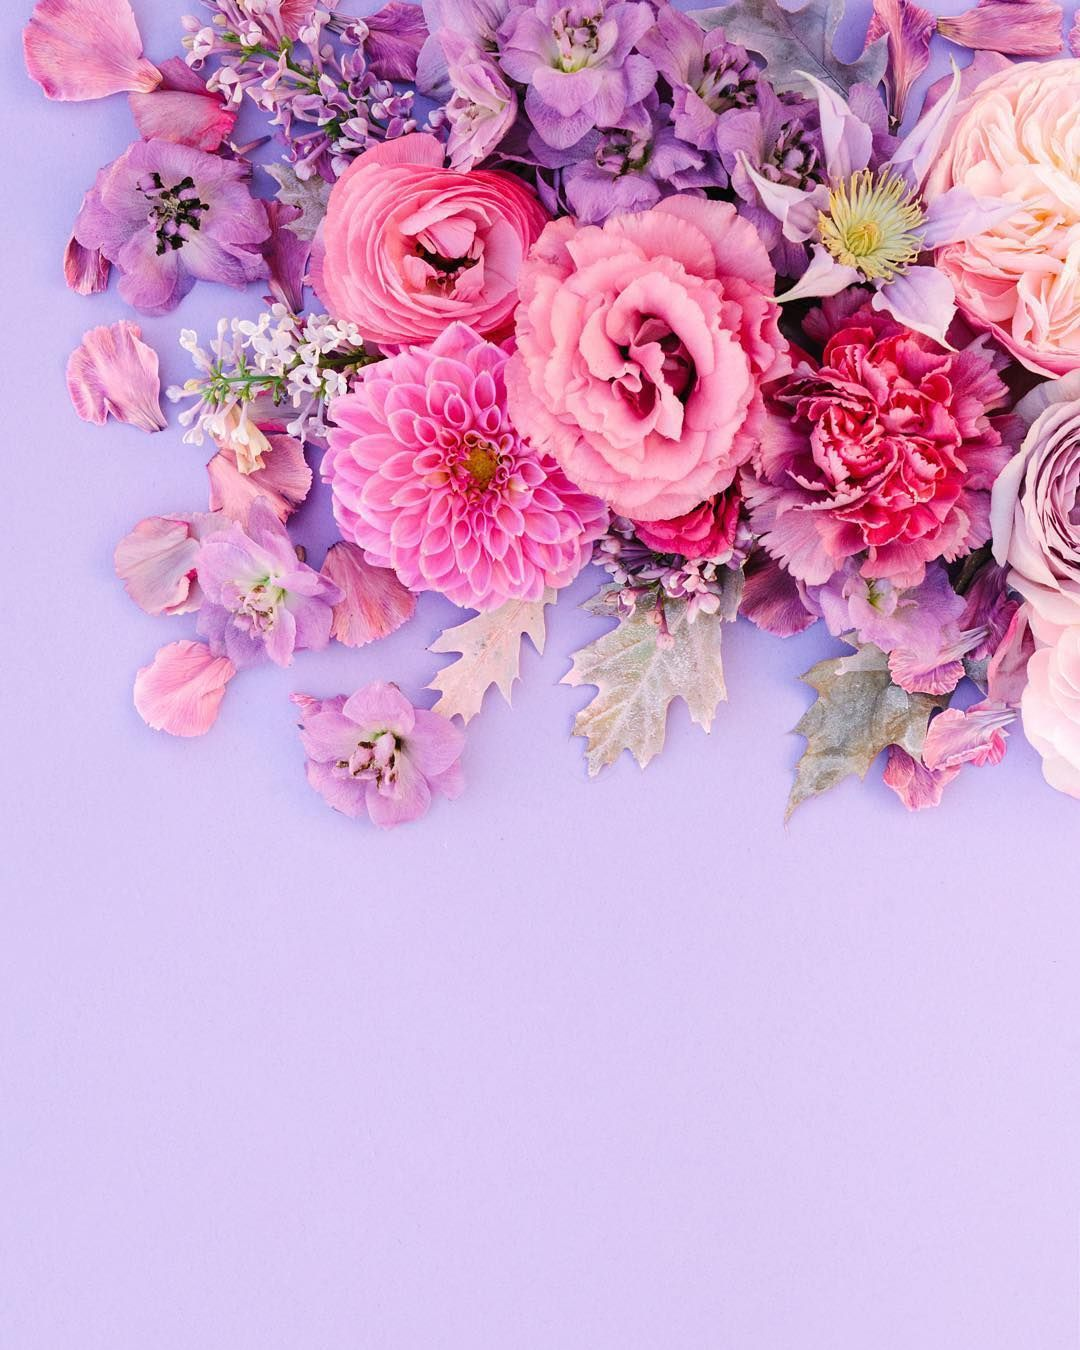 Pink And Purple Unicorn Floral Explosion By Shindigchic Pink Purple Flower Pink And Purple Wallpaper Pink Flowers Wallpaper Purple Flowers Wallpaper